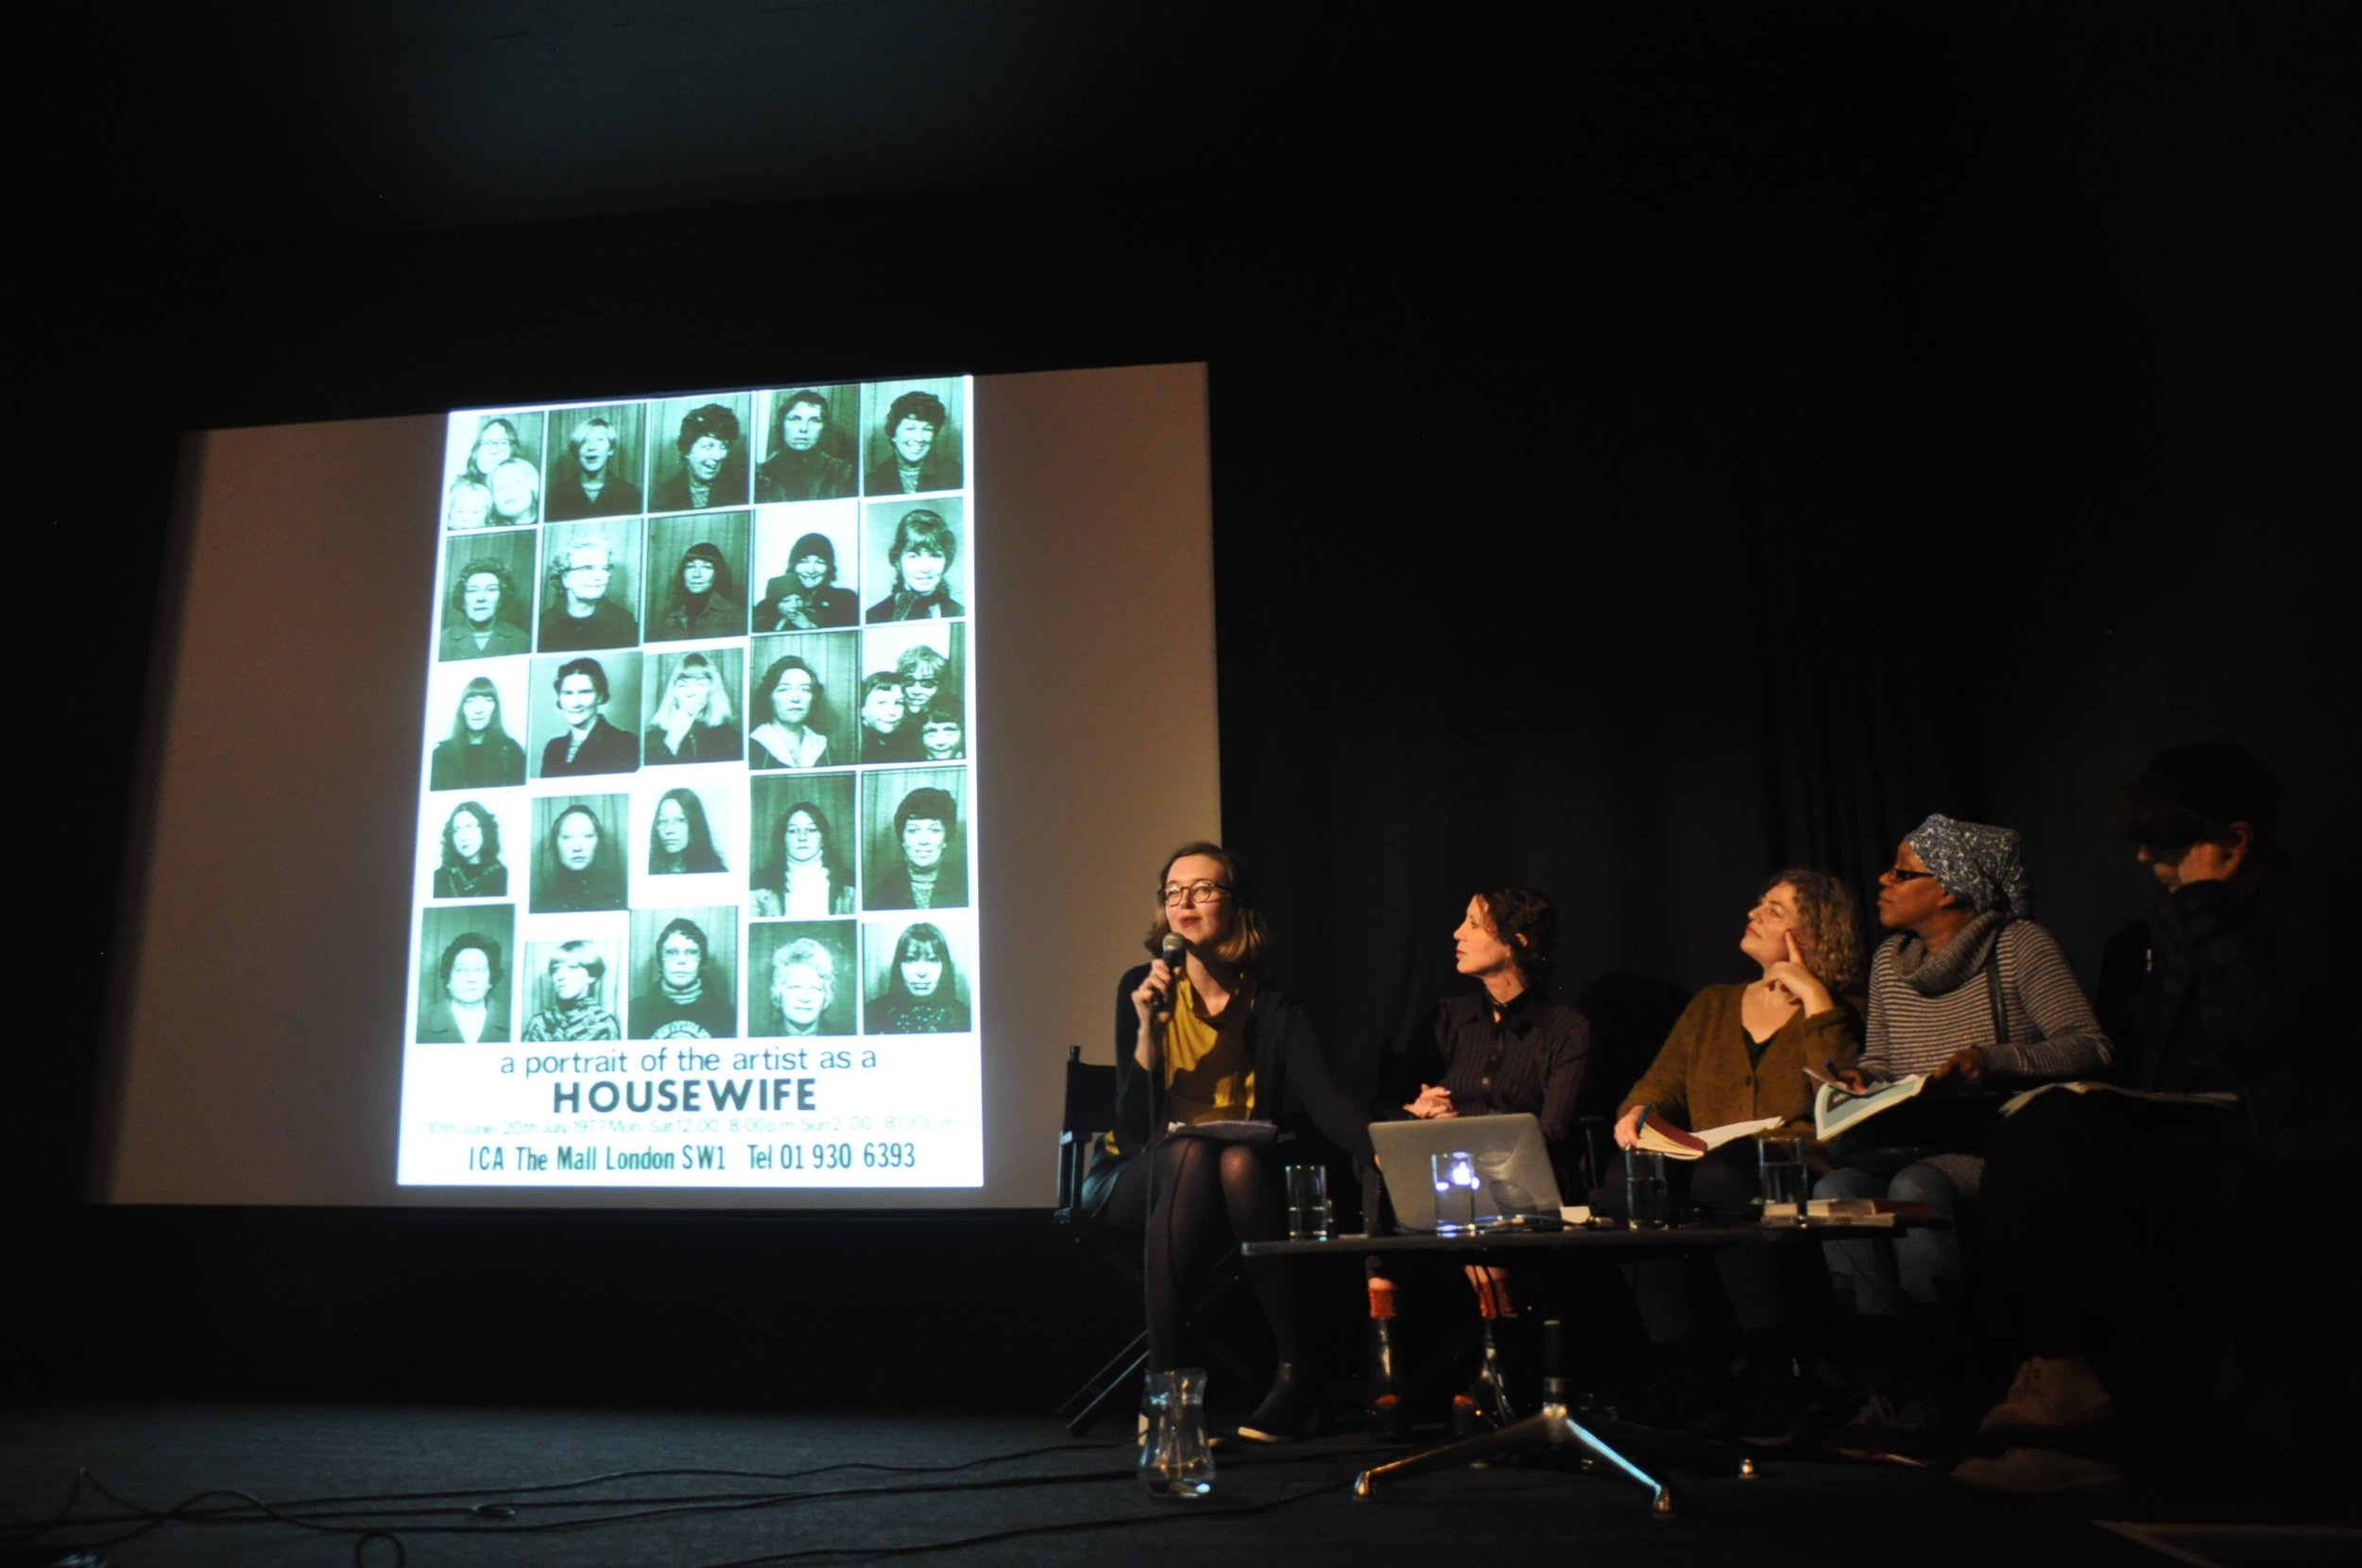 Amy Tobin, Valeria Napoleone, Lisa Panting, Sonia Boyce, and Lois Keidan, Rescue Missions, ICA London, as part of Now You Can Go. Photo: Ehryn Torrell.